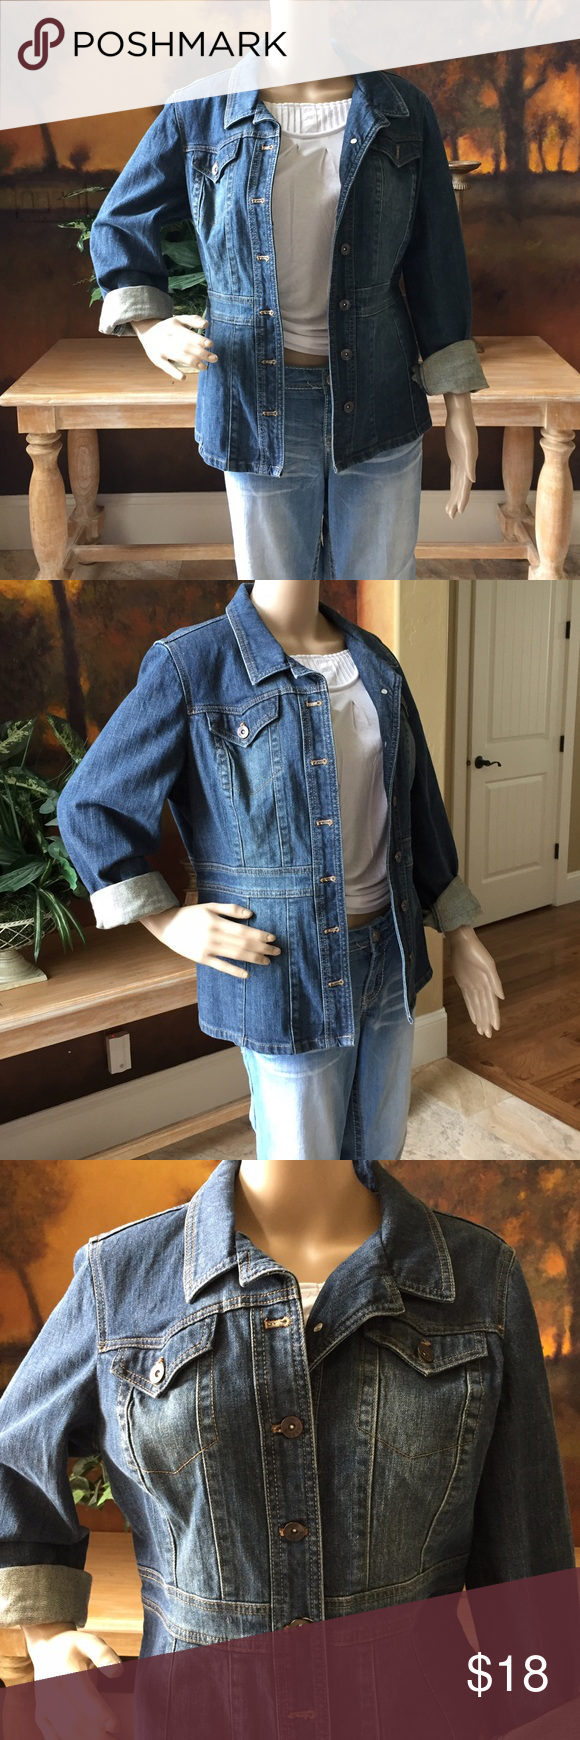 Denim Jacket by Axcess Pretty denim jacket in excellent condition, no rips or stains. Jackets & Coats Jean Jackets